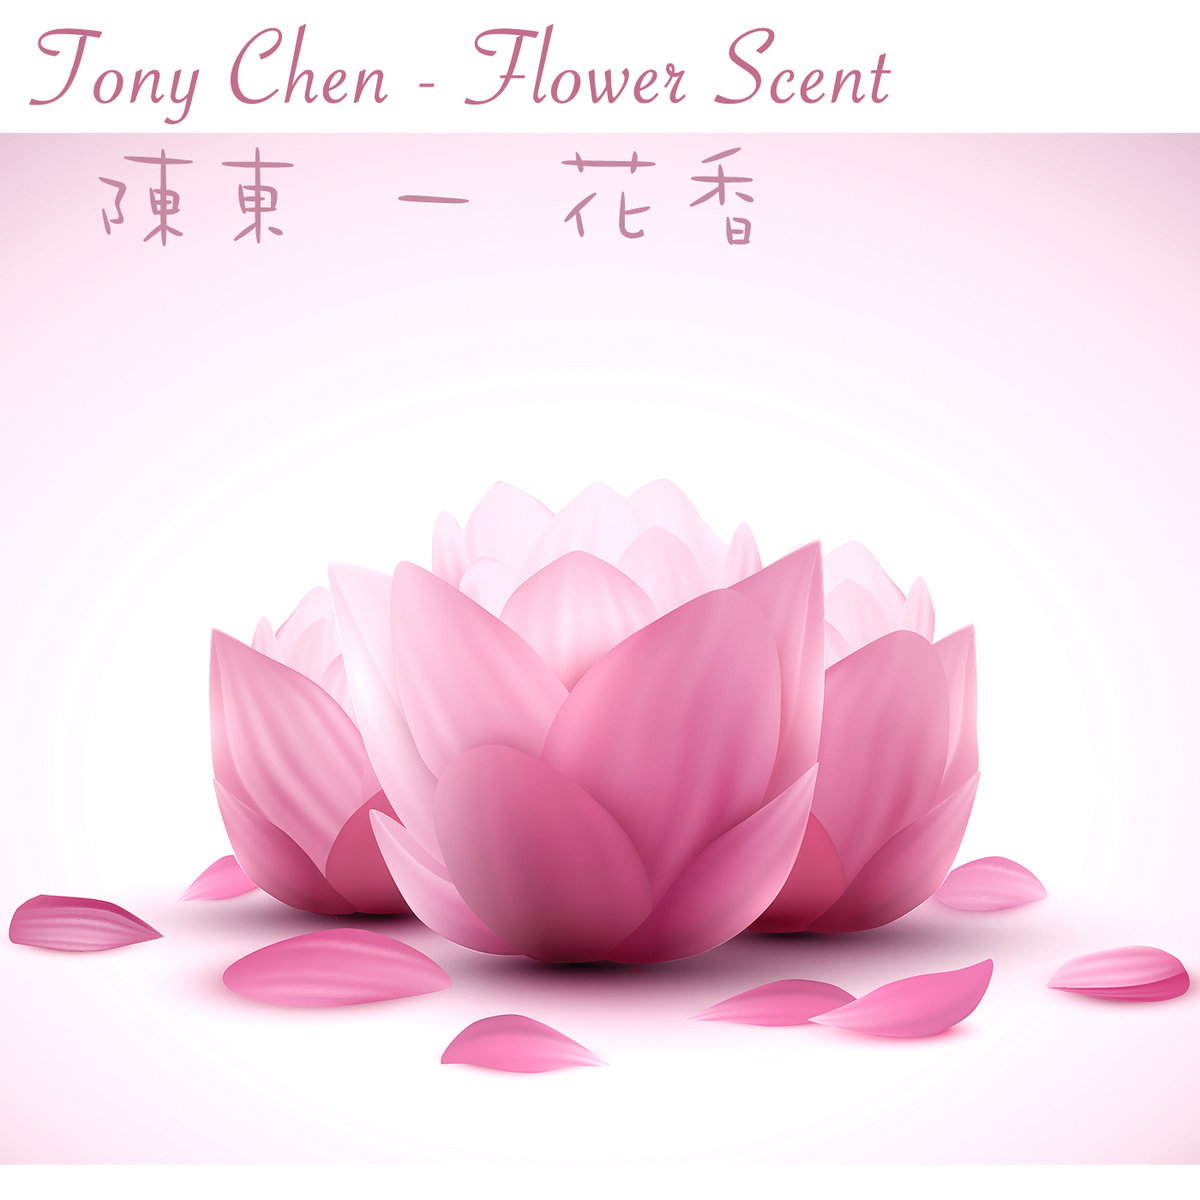 Flower Scent Tony Chen